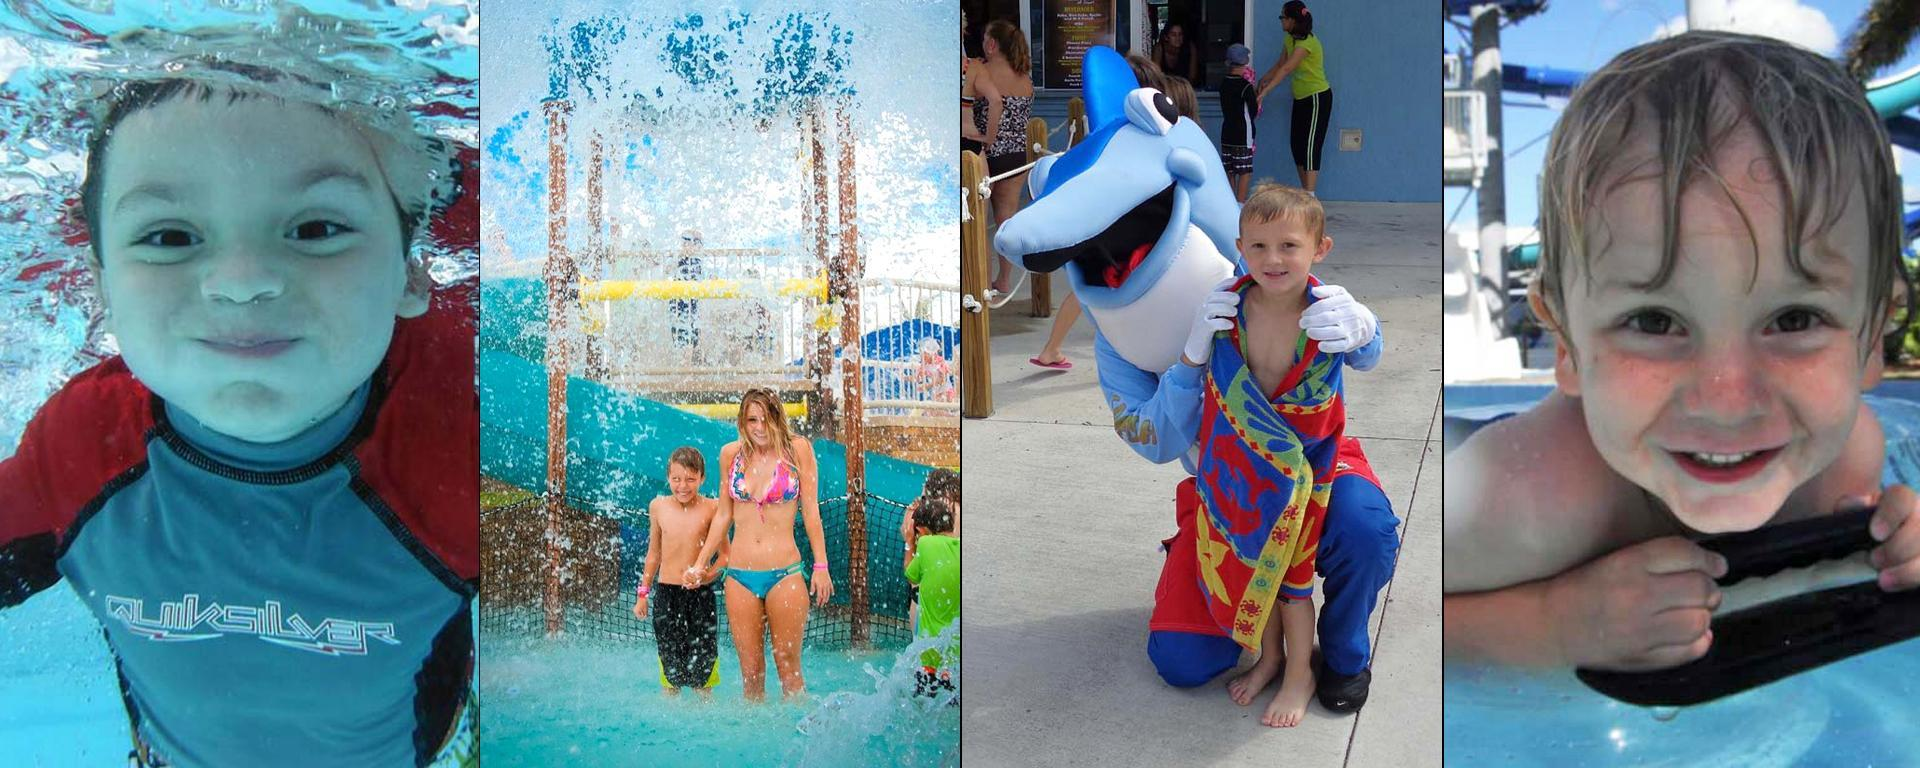 Kids and teens enjoying Sailfish Splash Waterpark